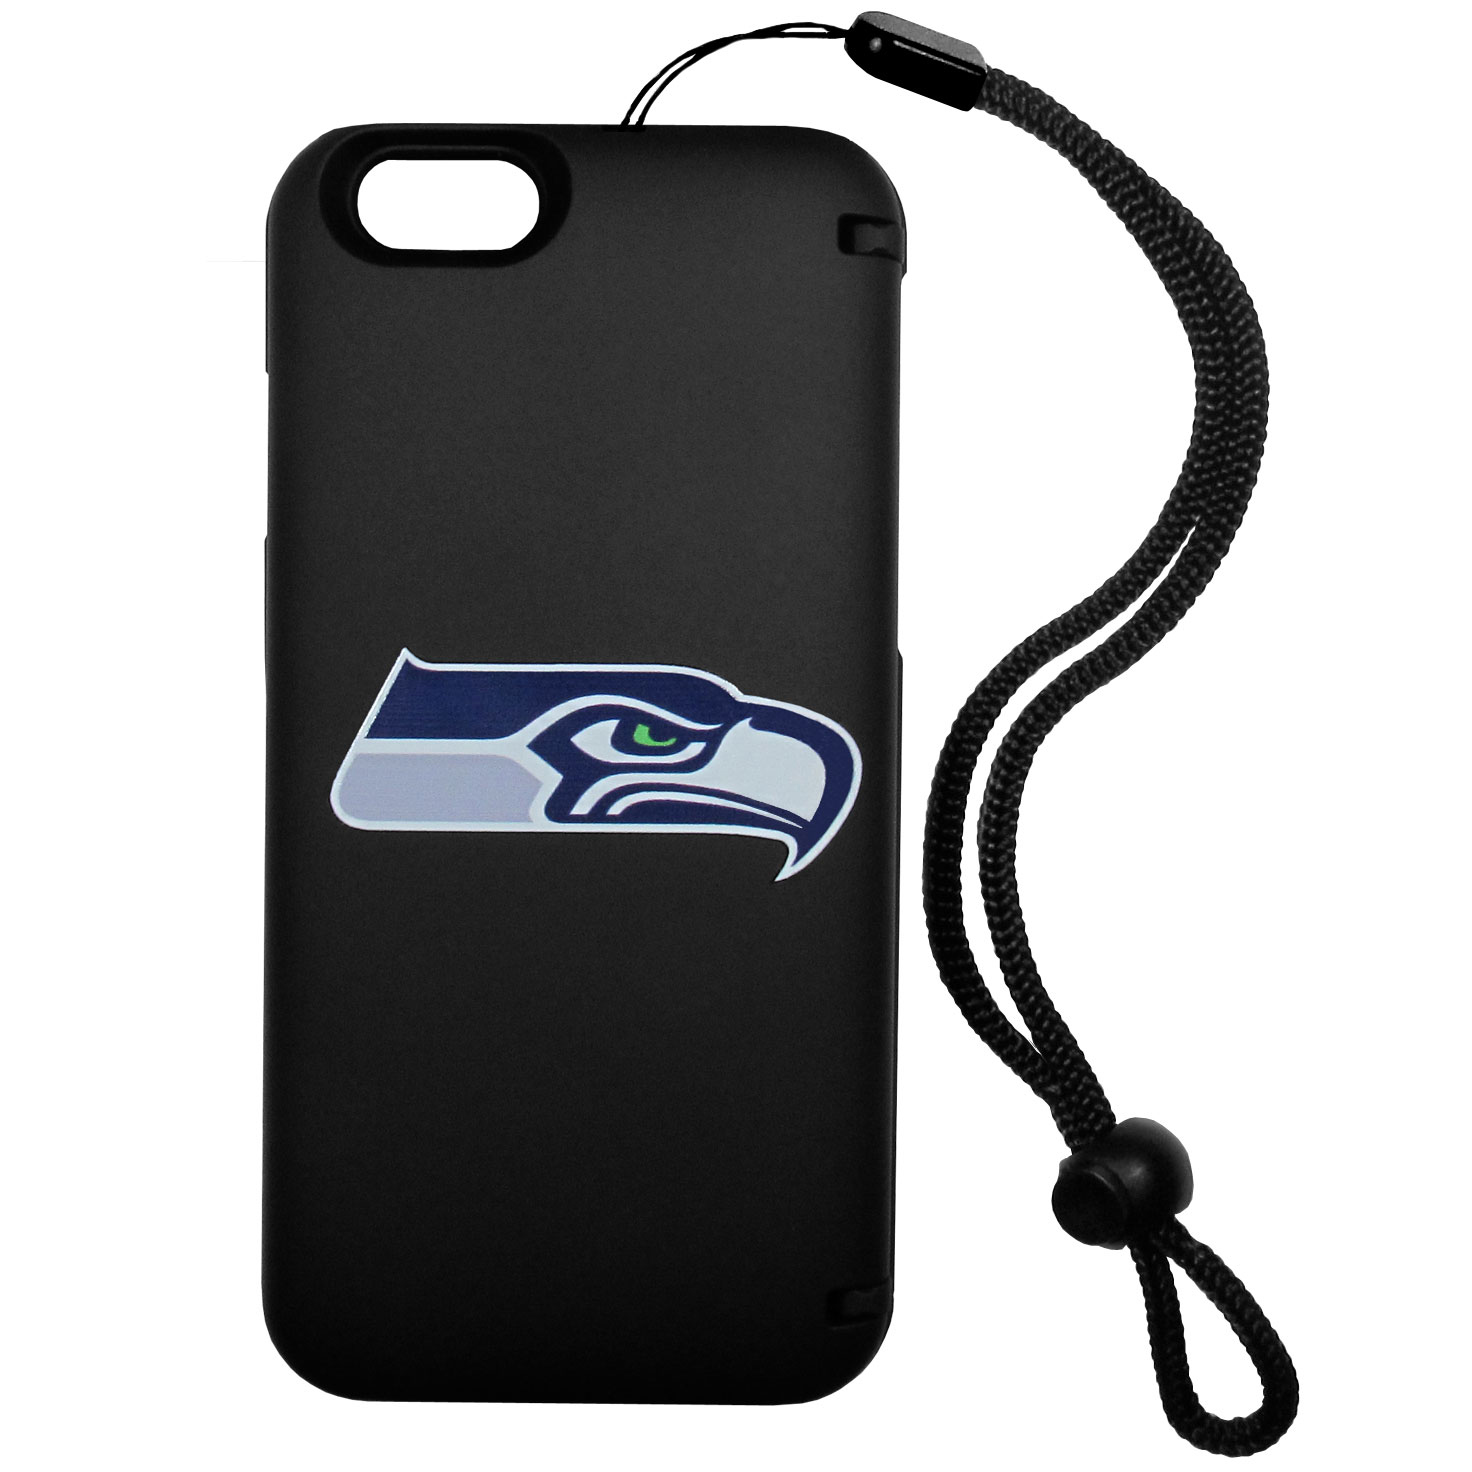 Seattle Seahawks iPhone 6 Plus Everything Case - This case really does have everything but the kitchen sink! The hidden compartment lets you keep your cards, money and tickets to the big game safe and secure and has a compact mirror so you can make sure your game face is ready to go. It also comes with a kickstand to make chatting and watching videos a breeze. The wrist strap allows you to travel with ease with your everything case. If that's not enough, it also comes with the Seattle Seahawks logo printed in expert detail on the front.